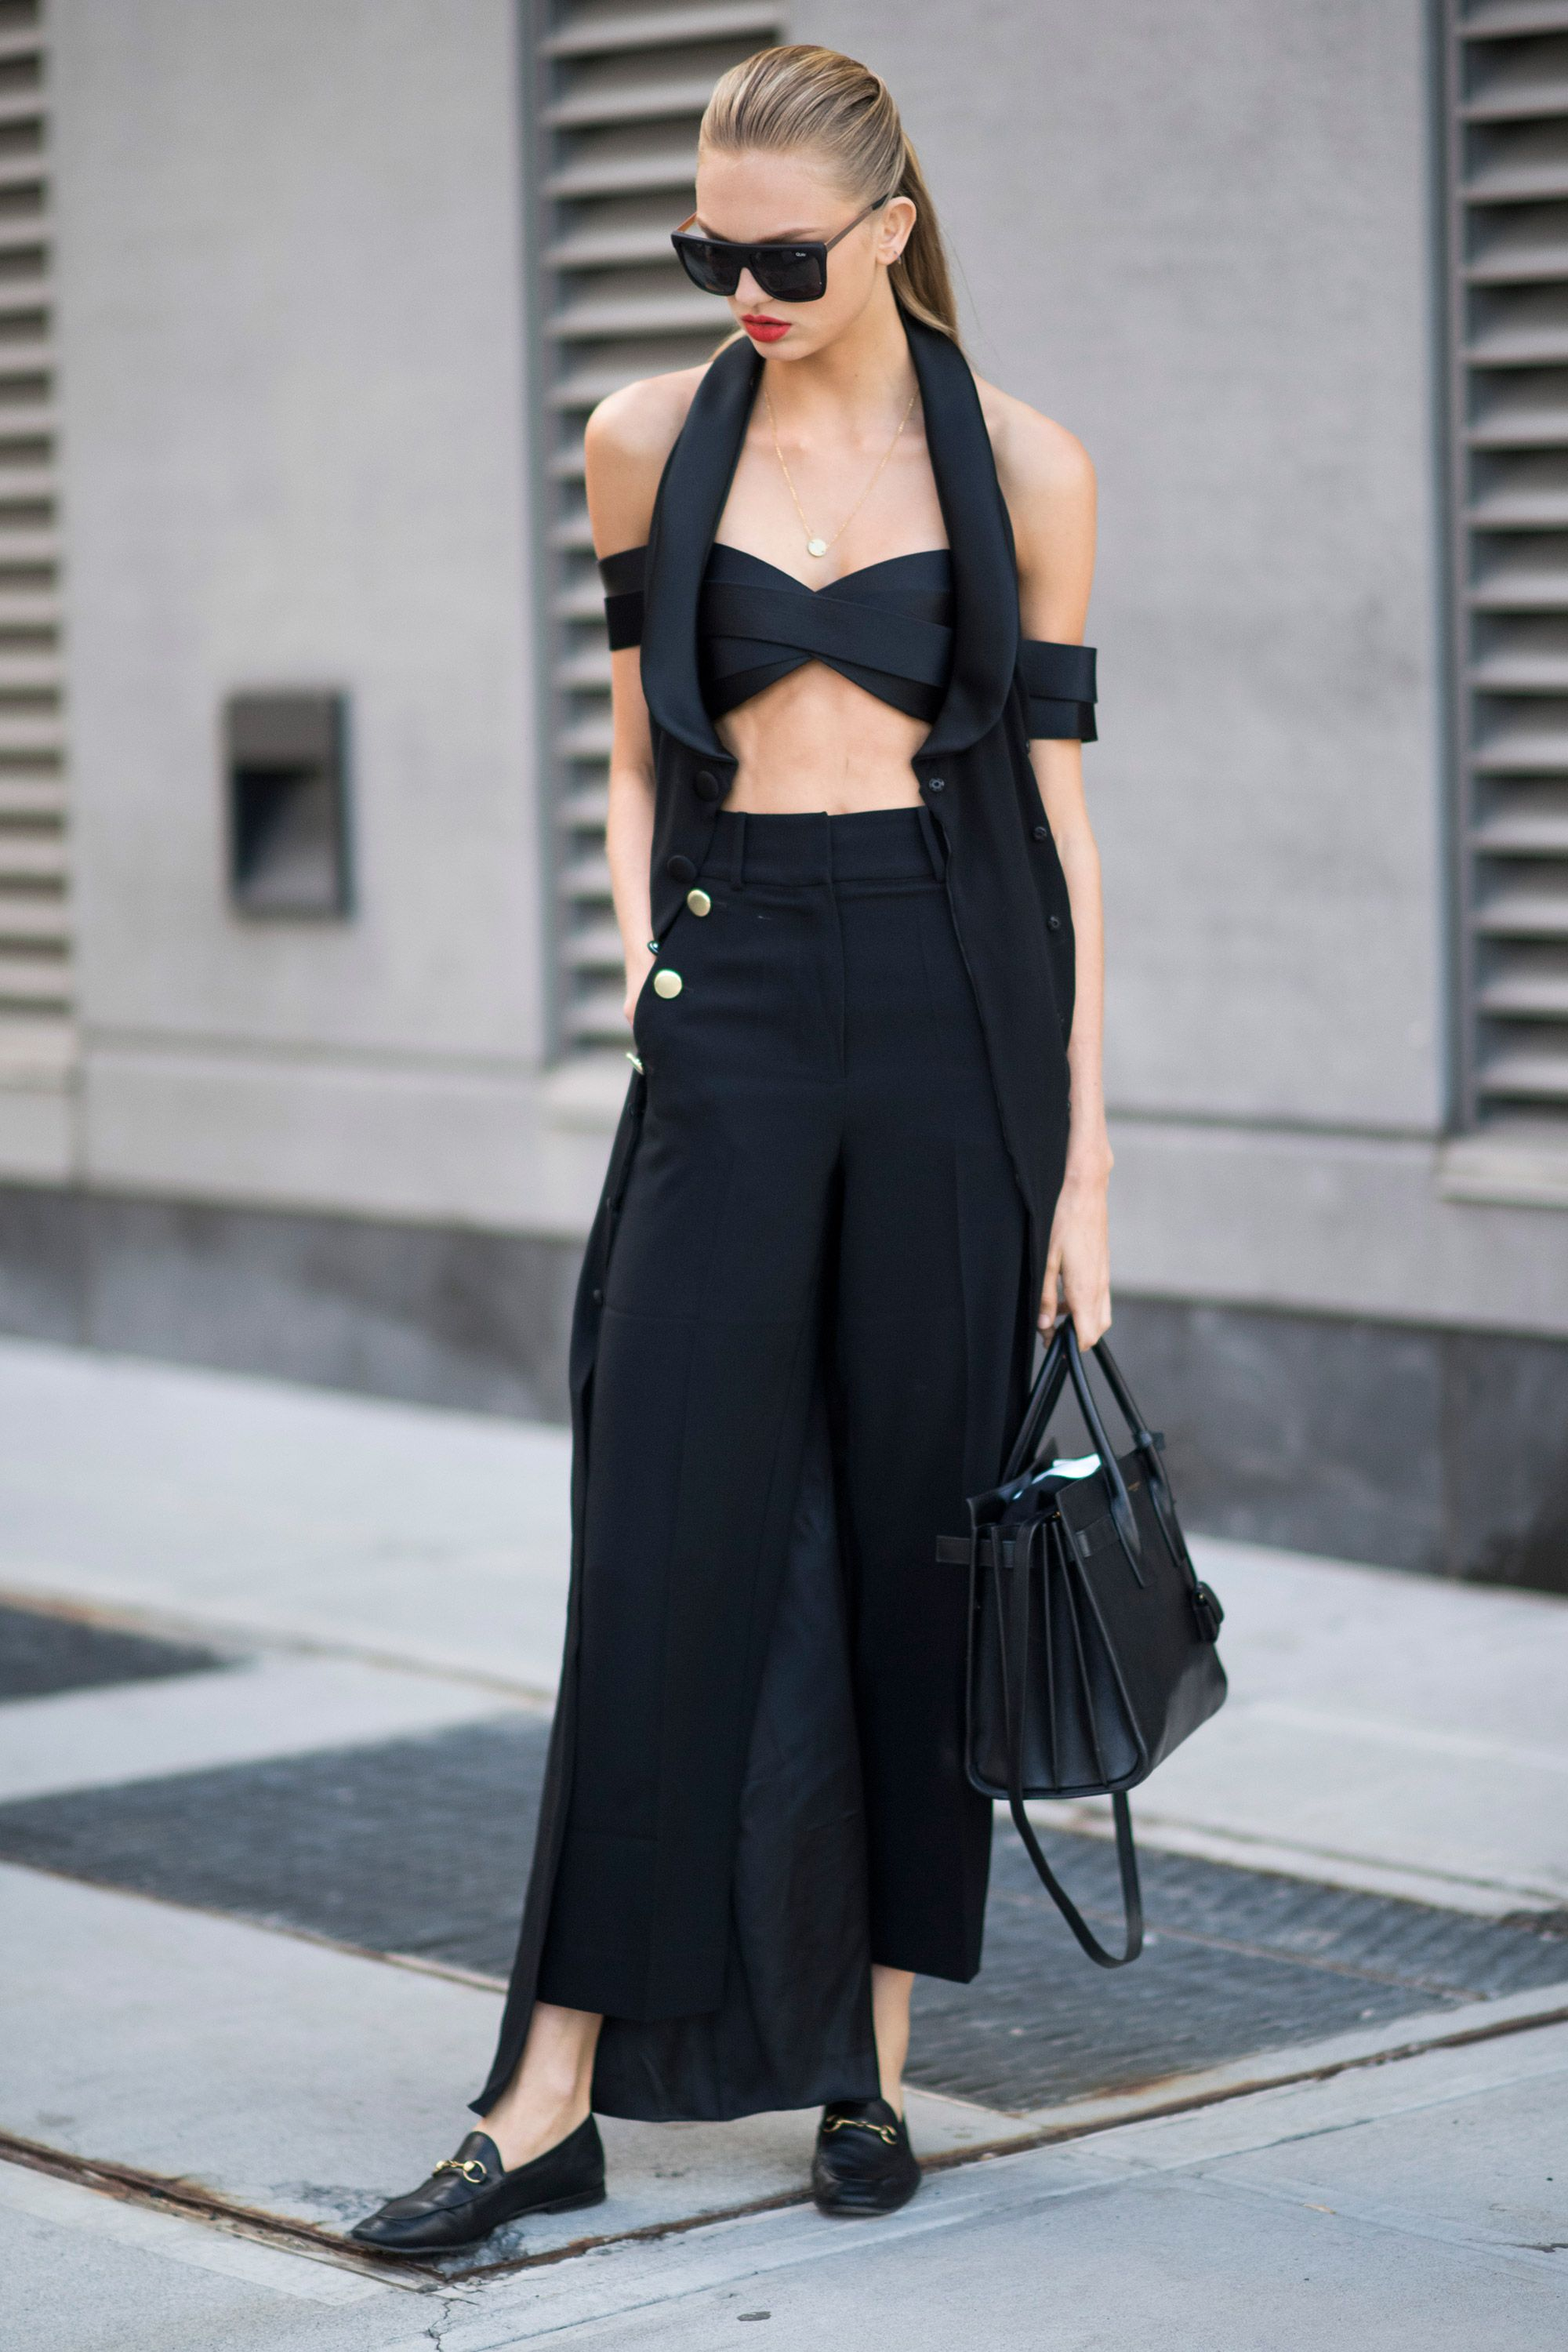 cfb163e226bb How to wear black in the summer – Tips for dressing in black in the sun